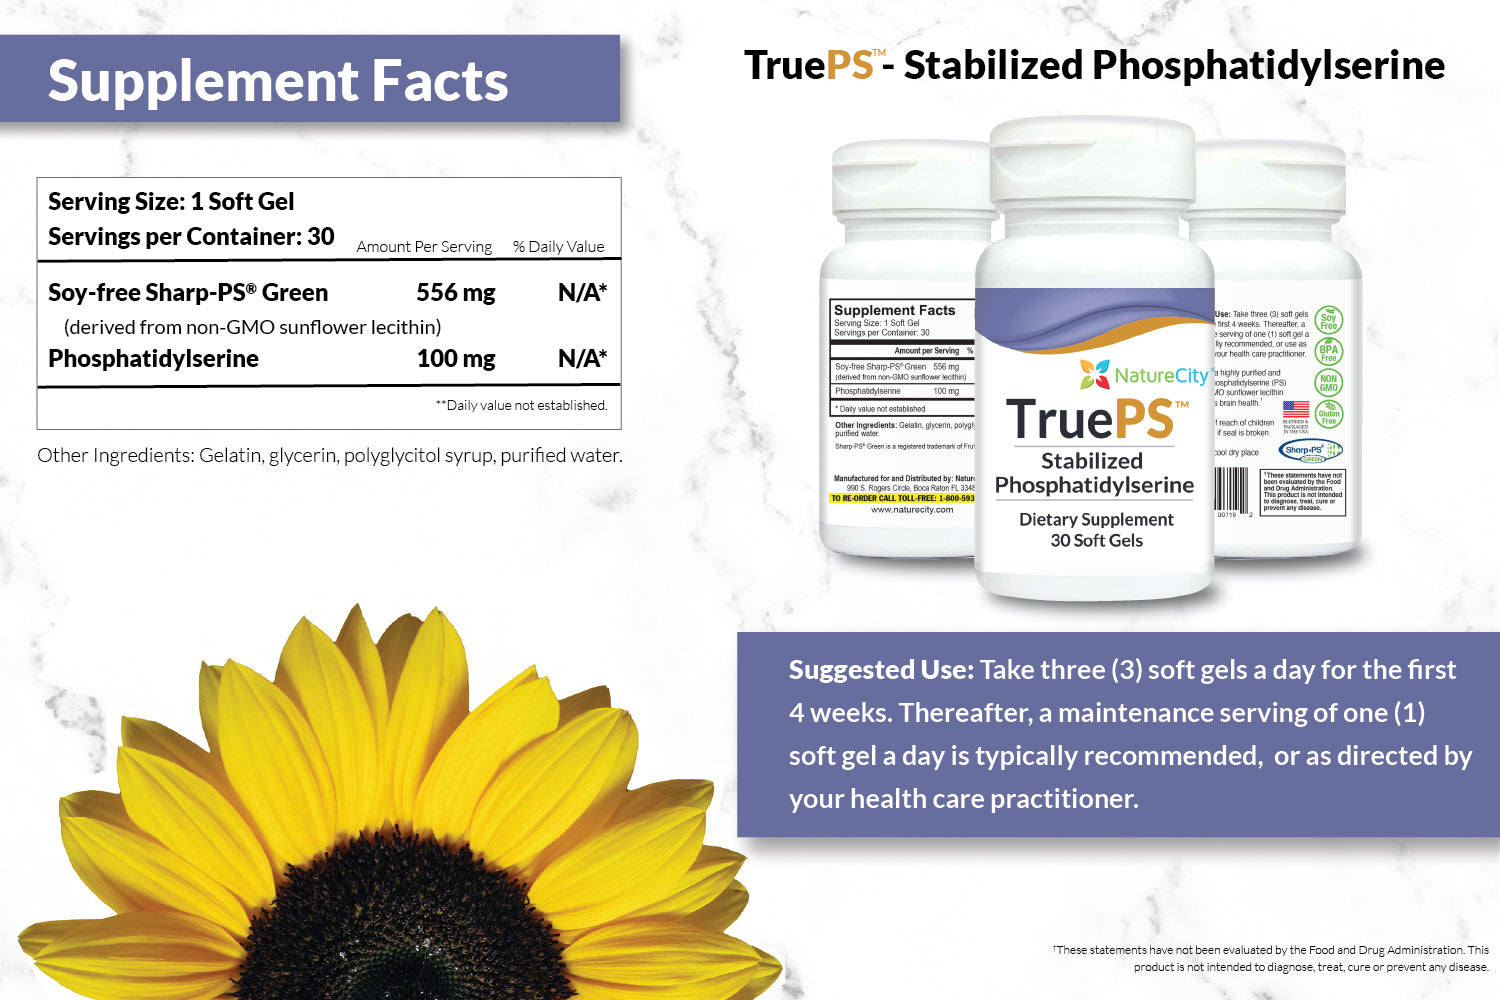 TruePS Stabilized Phosphatidylserine Supplement Facts and Suggested Uses